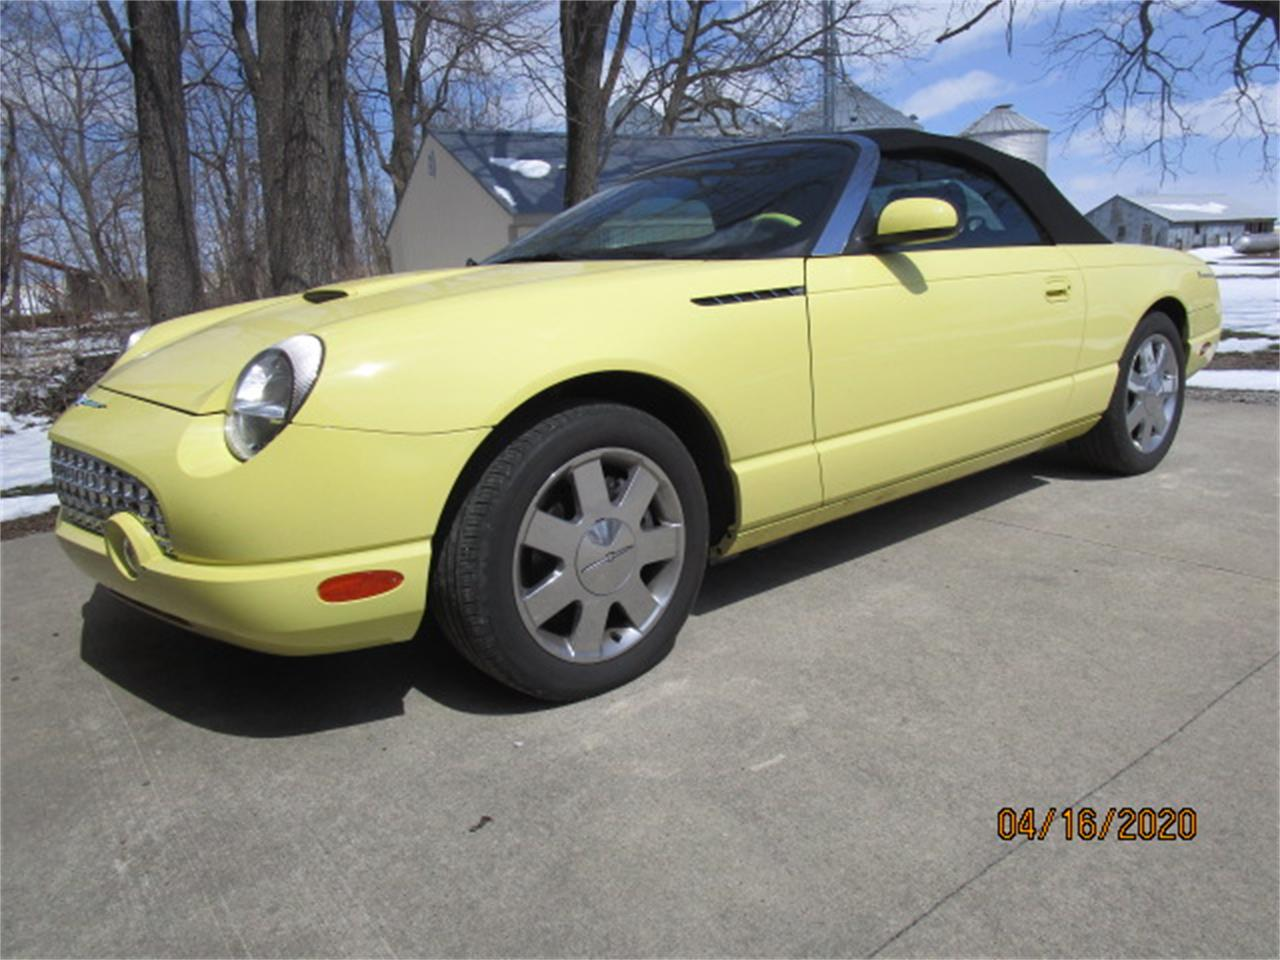 2002 Ford Thunderbird (CC-1340261) for sale in Dodge Center, Minnesota